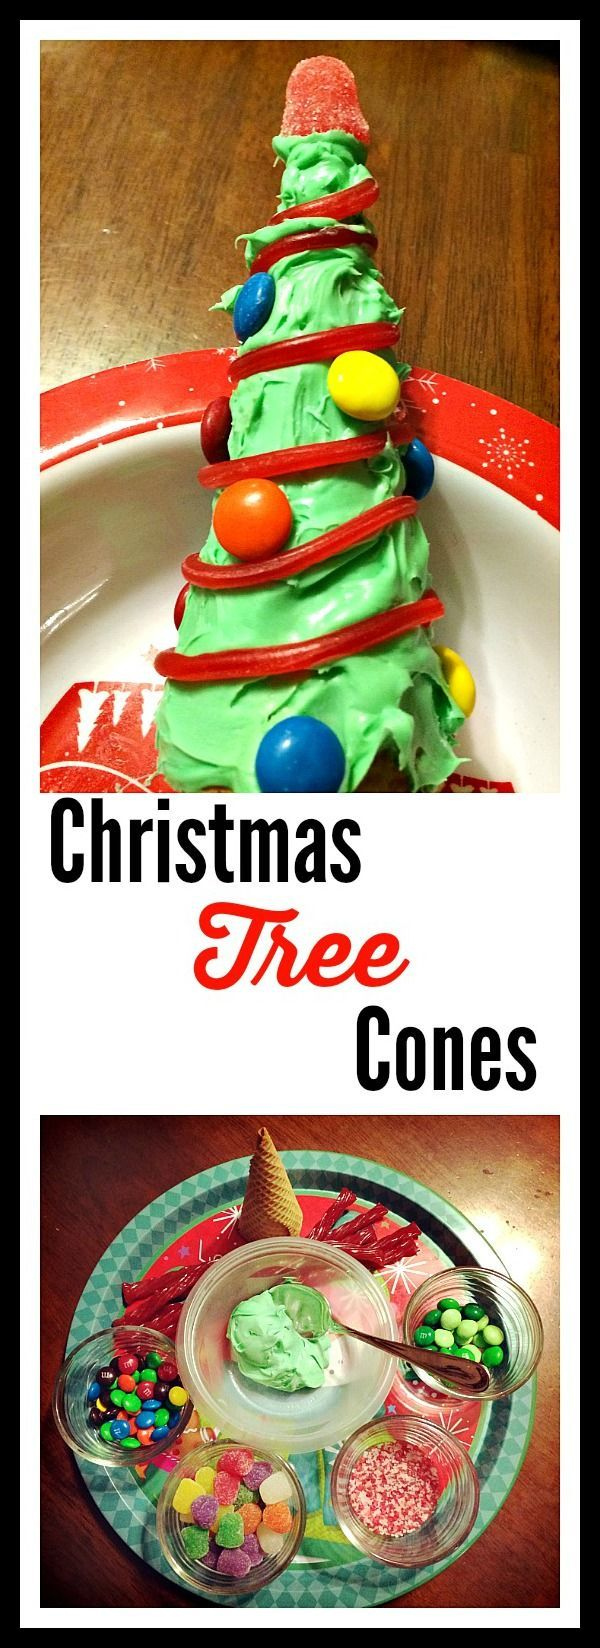 Here's a fun, easy idea to do with your kids for a Christmas activity - make Christmas Tree Cones! Frugal & simple but a fun family activity you can pull together last-minute.